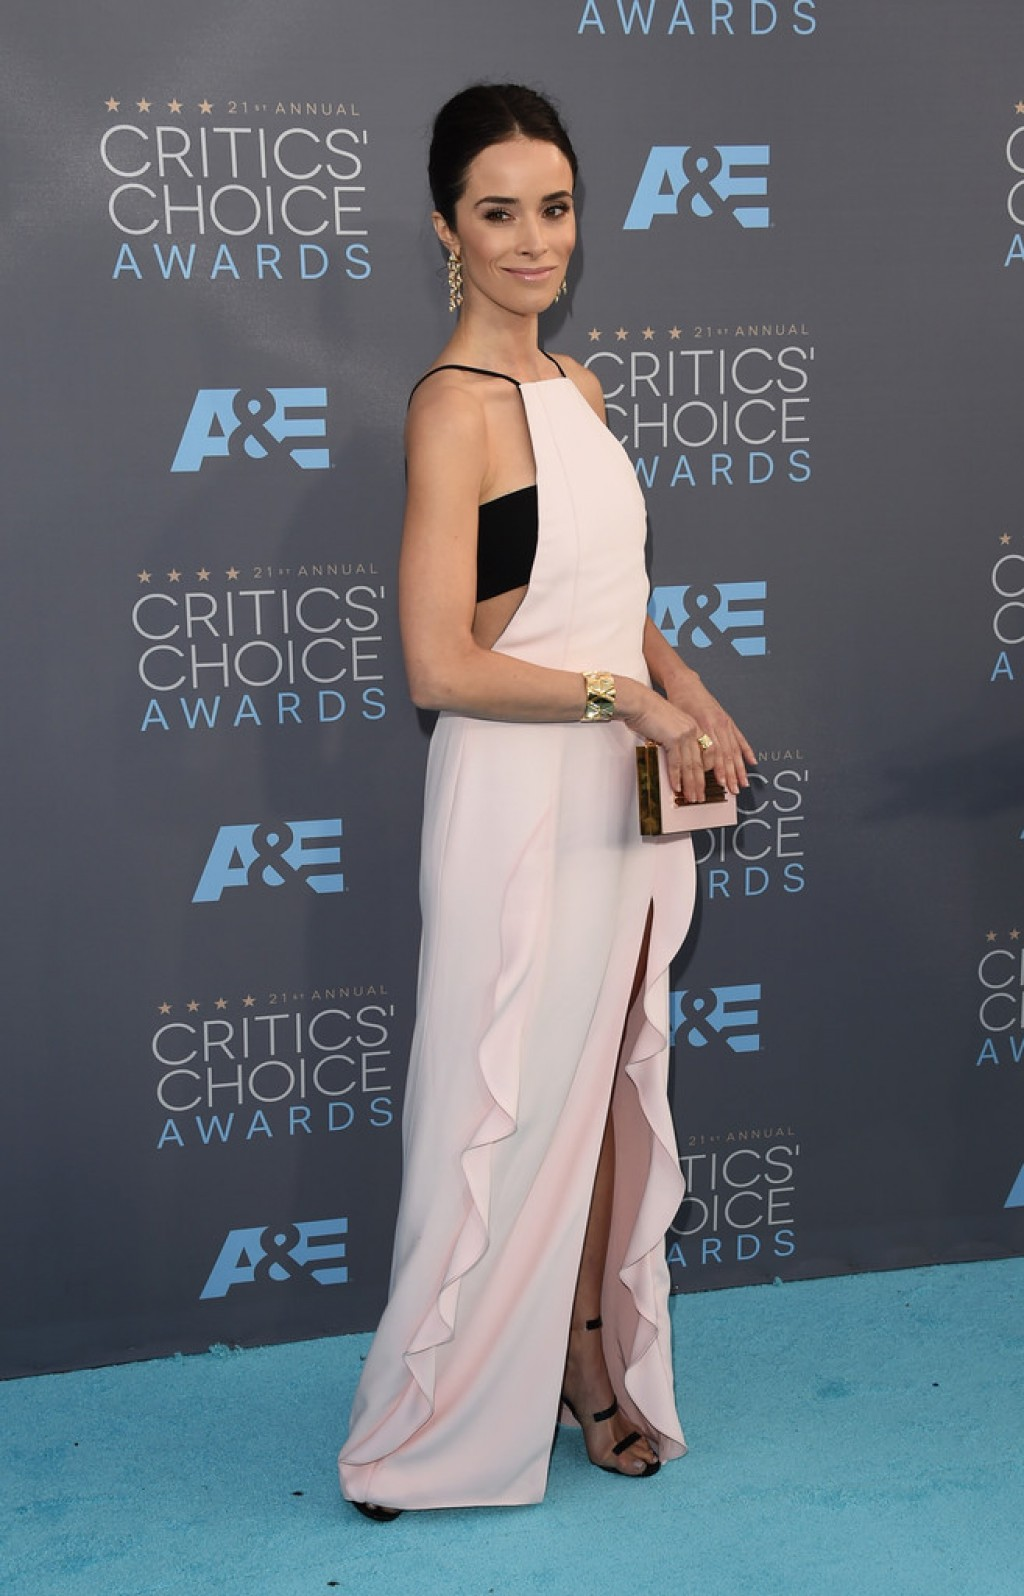 abigail-spencer-critics-choice-awards-jmendel-1024x1596-1